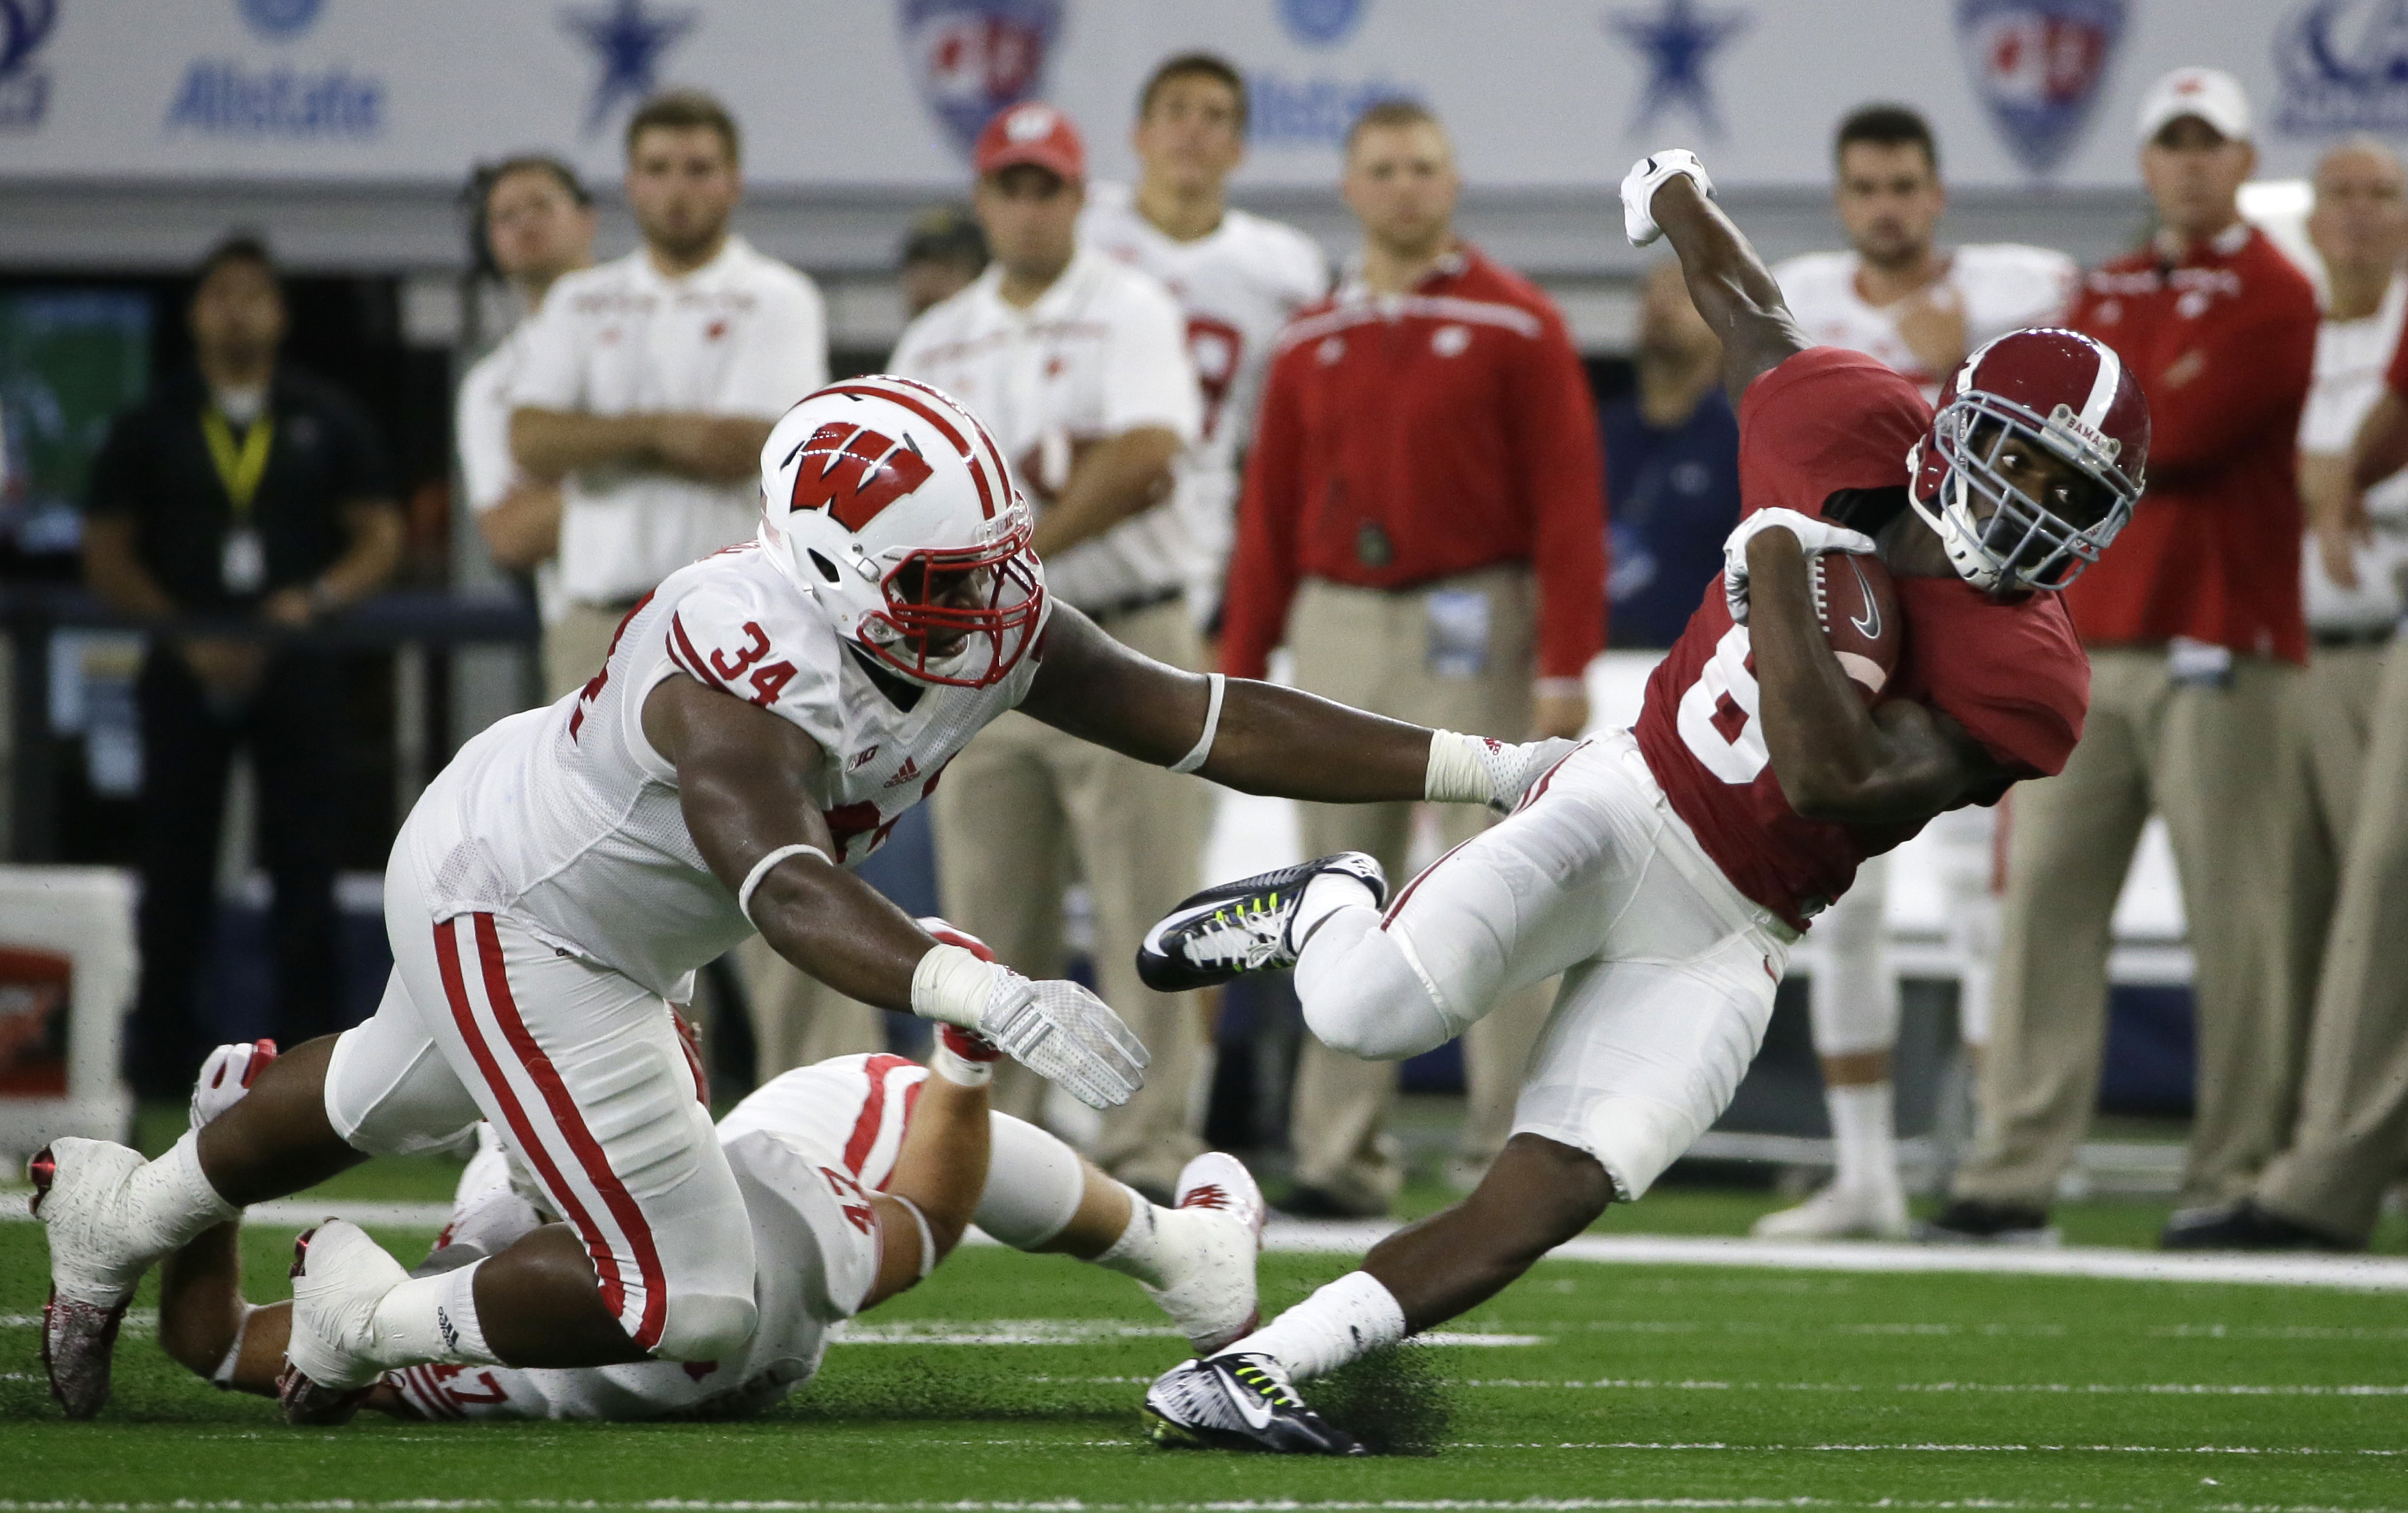 FILE - In this Sept. 5, 2015, file photo, Alabama wide receiver Robert Foster (8) catches a pass against Wisconsin defensive end Chikwe Obasih (34) and linebacker Vince Biegel (47) during the first half of an NCAA college football game, in Arlington, Texa